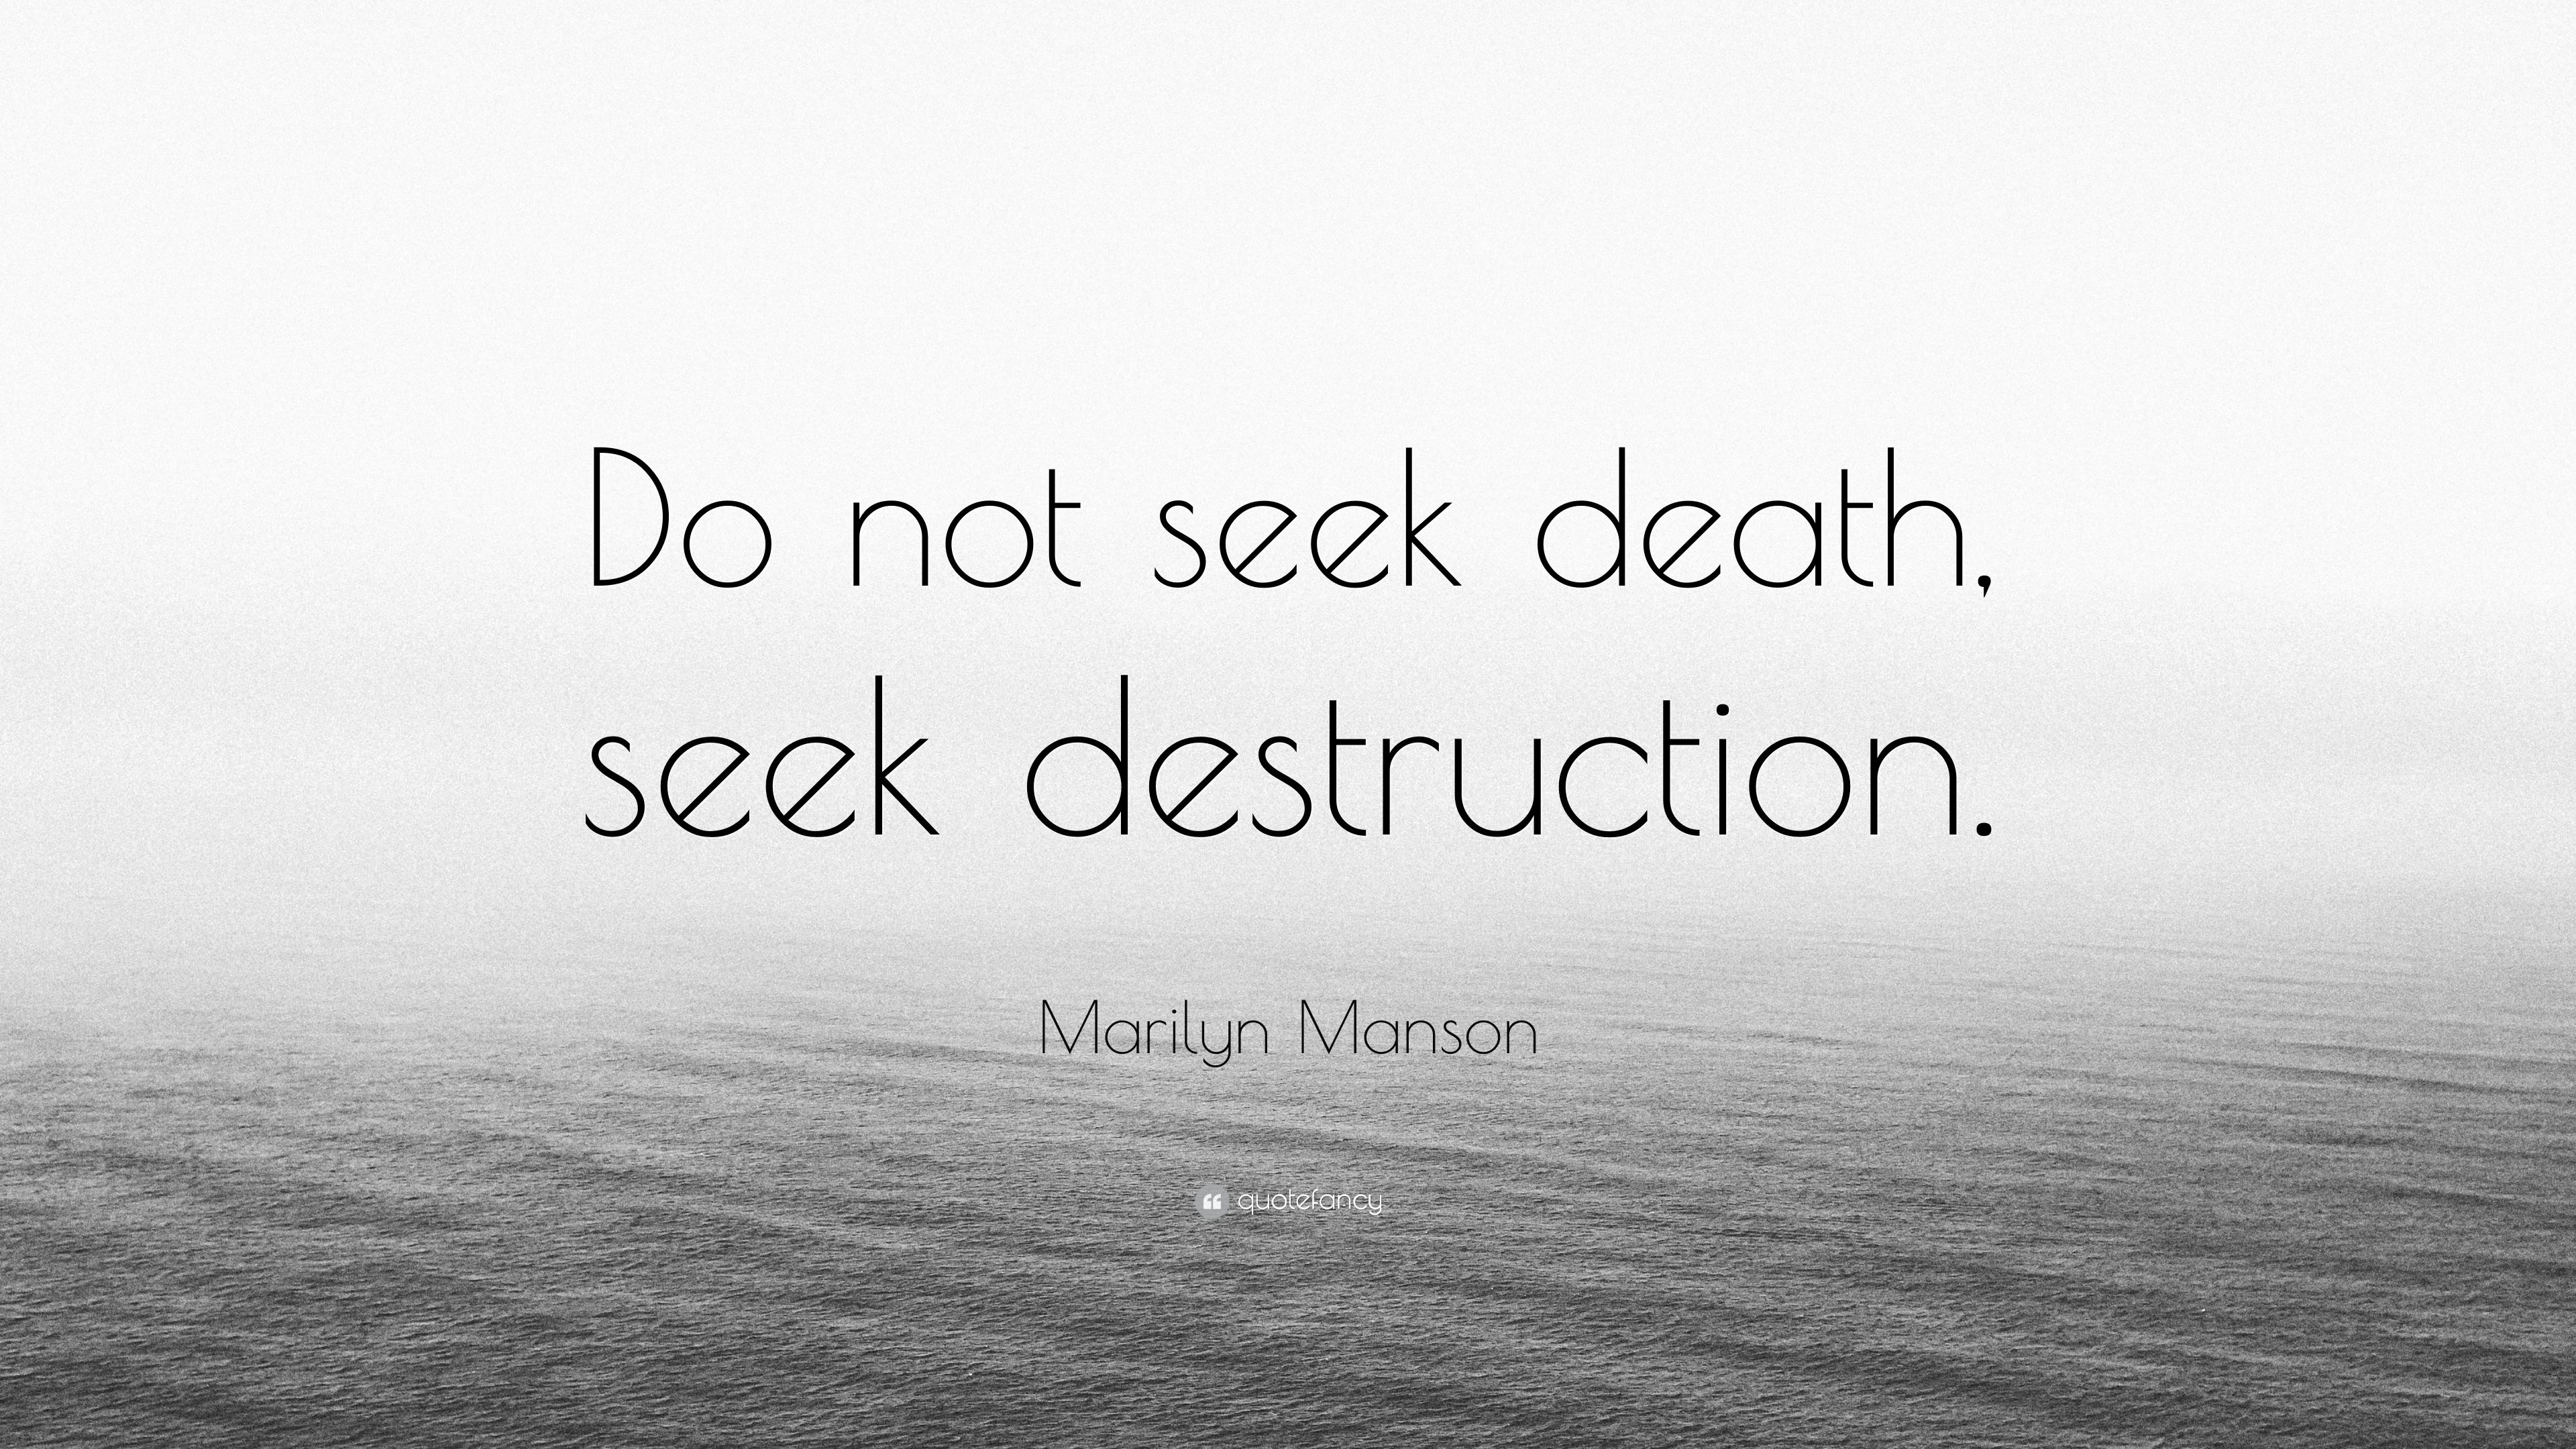 Ordinaire Marilyn Manson Quote: U201cDo Not Seek Death, Seek Destruction.u201d